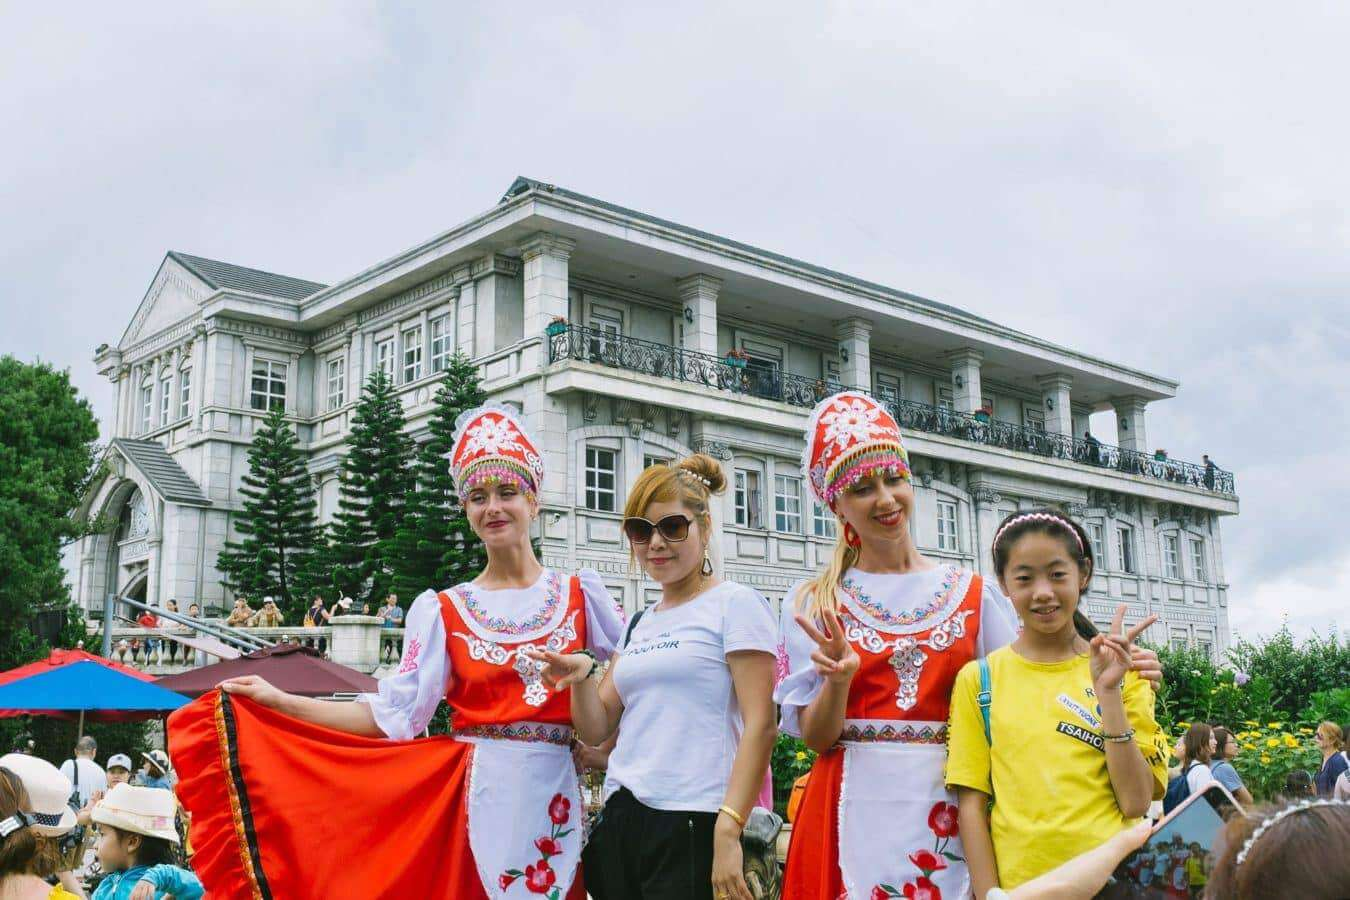 Colourfully dressed Ba Na Hills actors